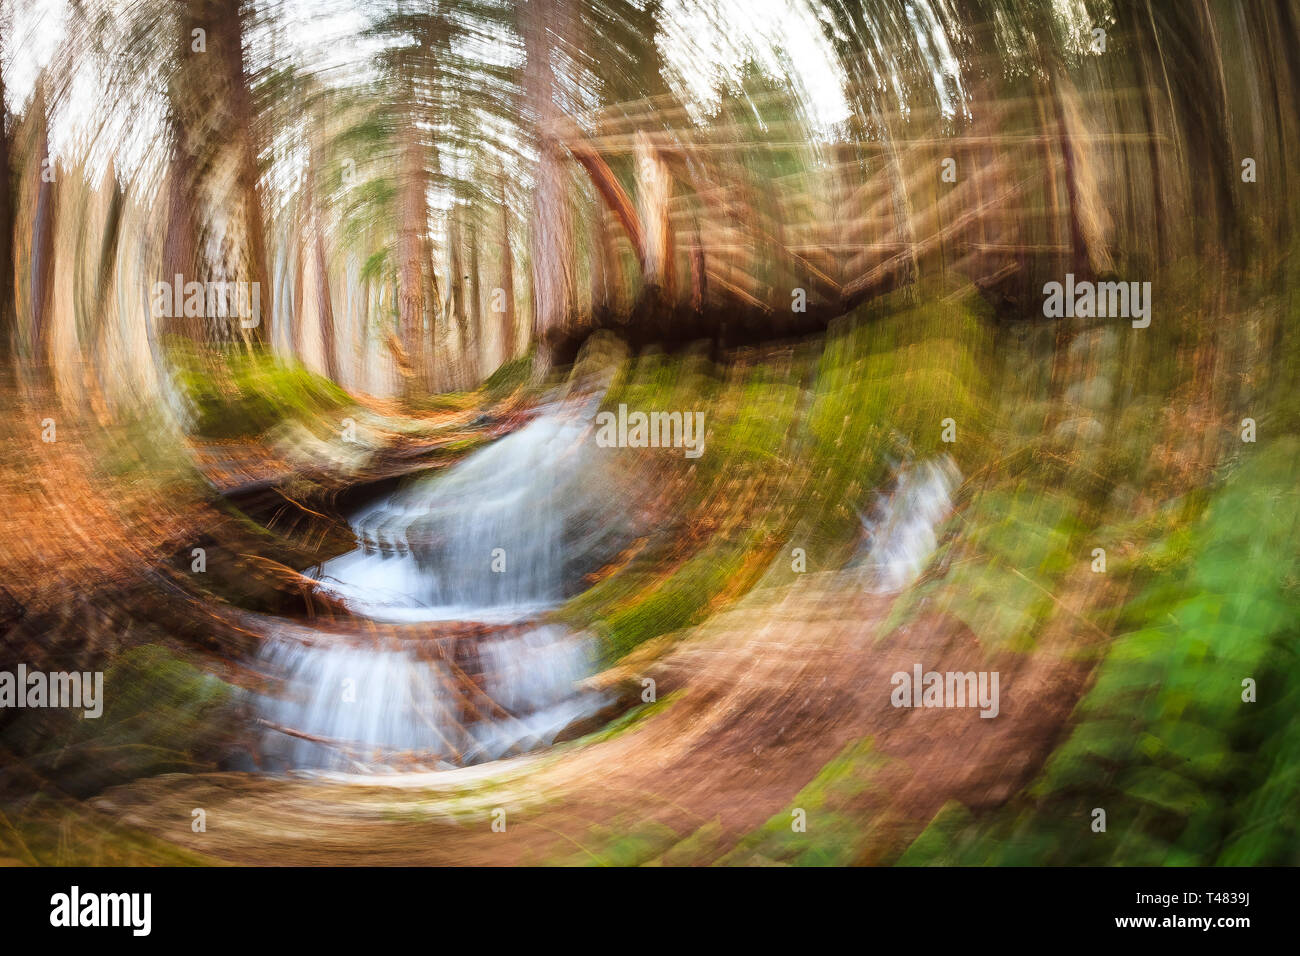 Rotational motion blur in a woodland, spinning effect - Stock Image